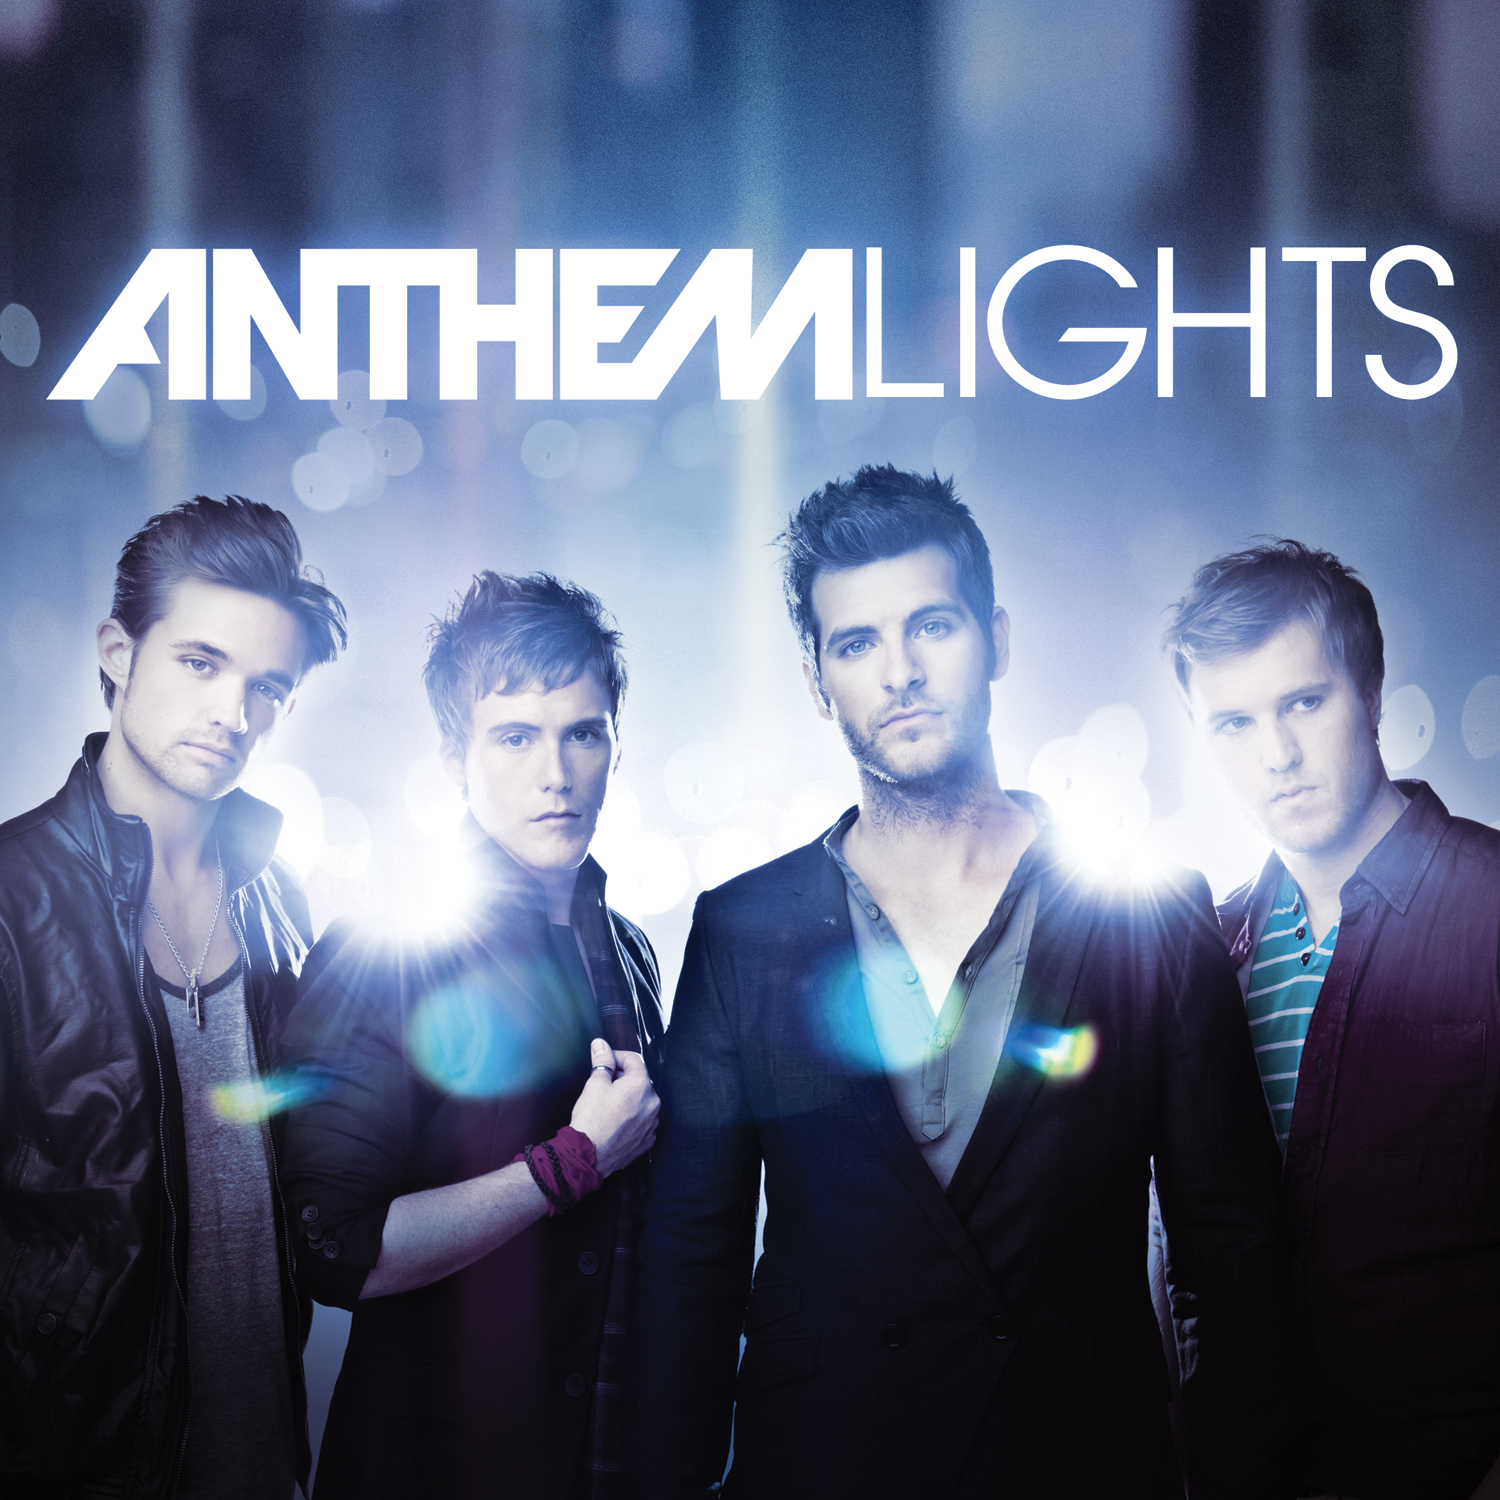 Karen Kingsbury Event: Anthem Lights